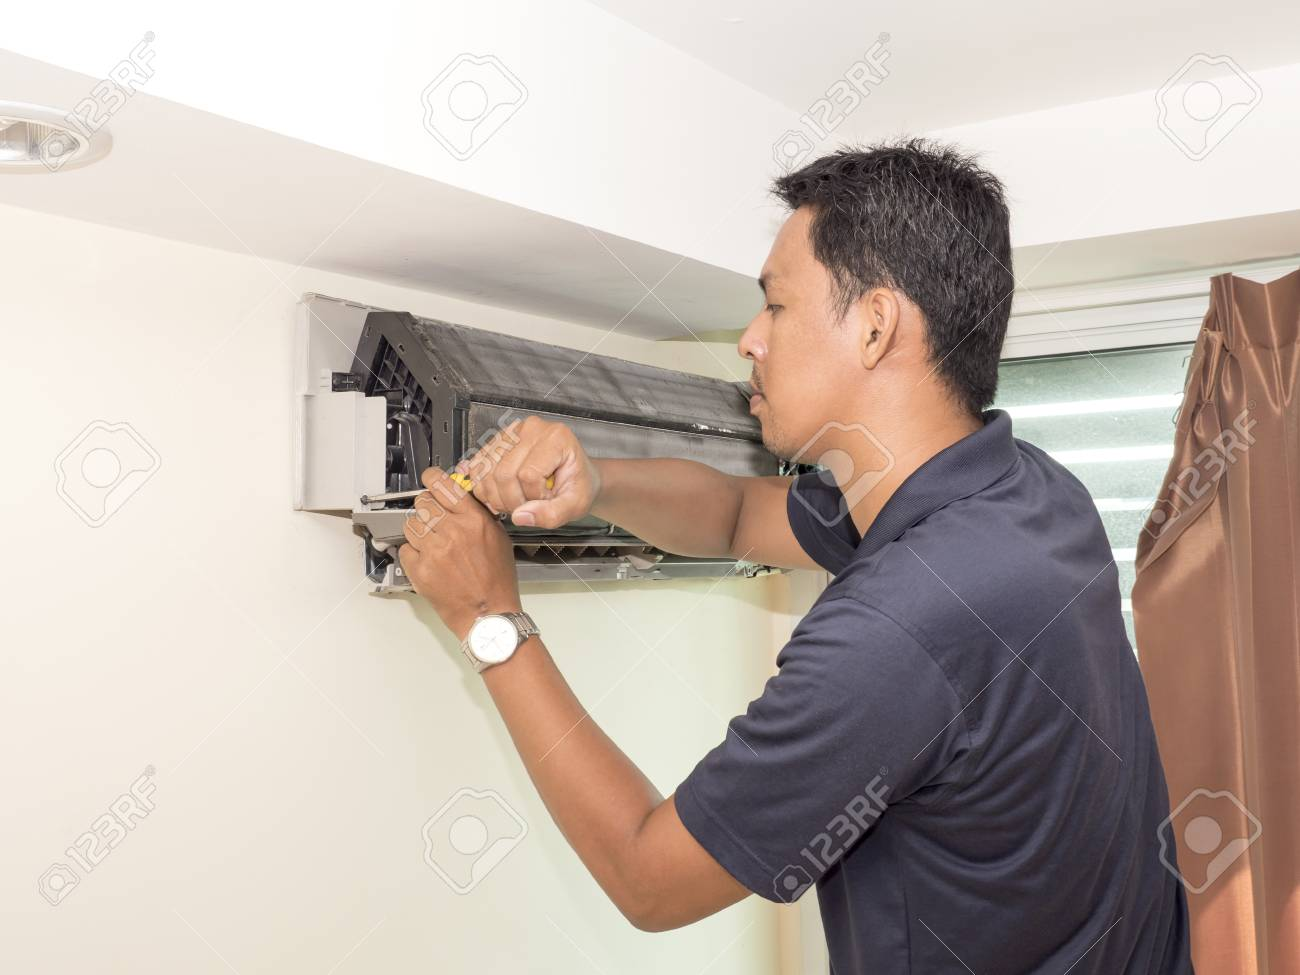 single electrician man clean, fix and maintain air conditioning